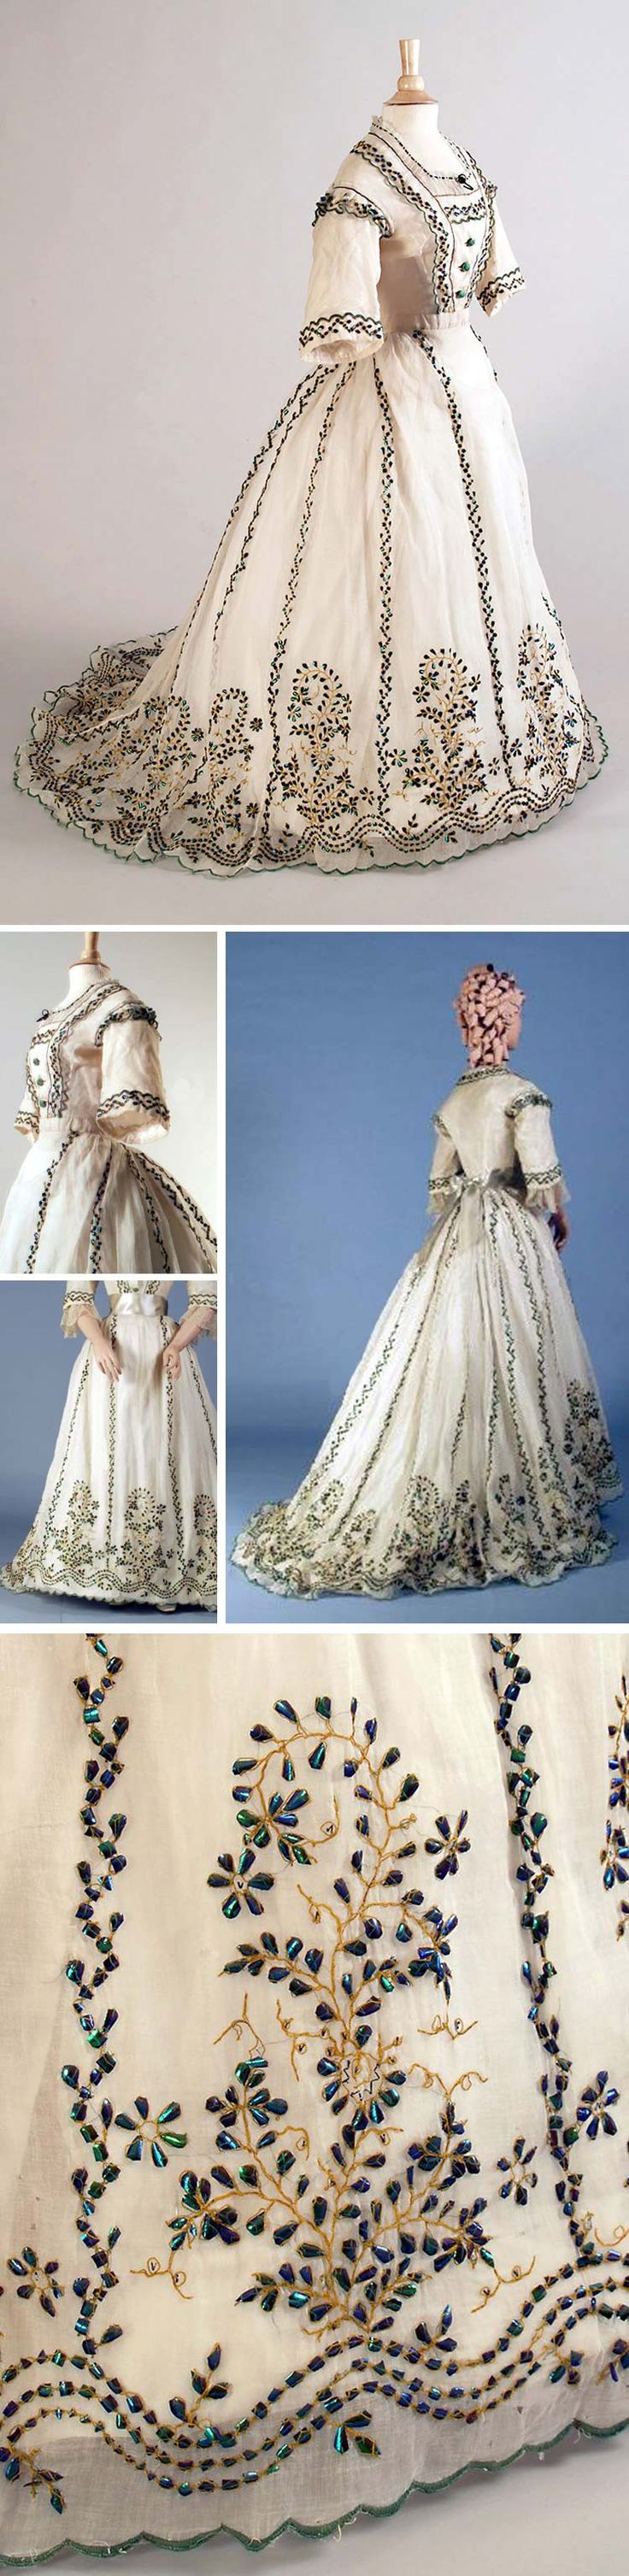 White cotton gauze dress ca. 1863-67, embroidered with green beetle wings, gold thread, lace trim, center front buttons to waist, full skirt, short sleeves. Embroidered in India, made for export. Kent State Univ. Museum & KSUM Pinterest